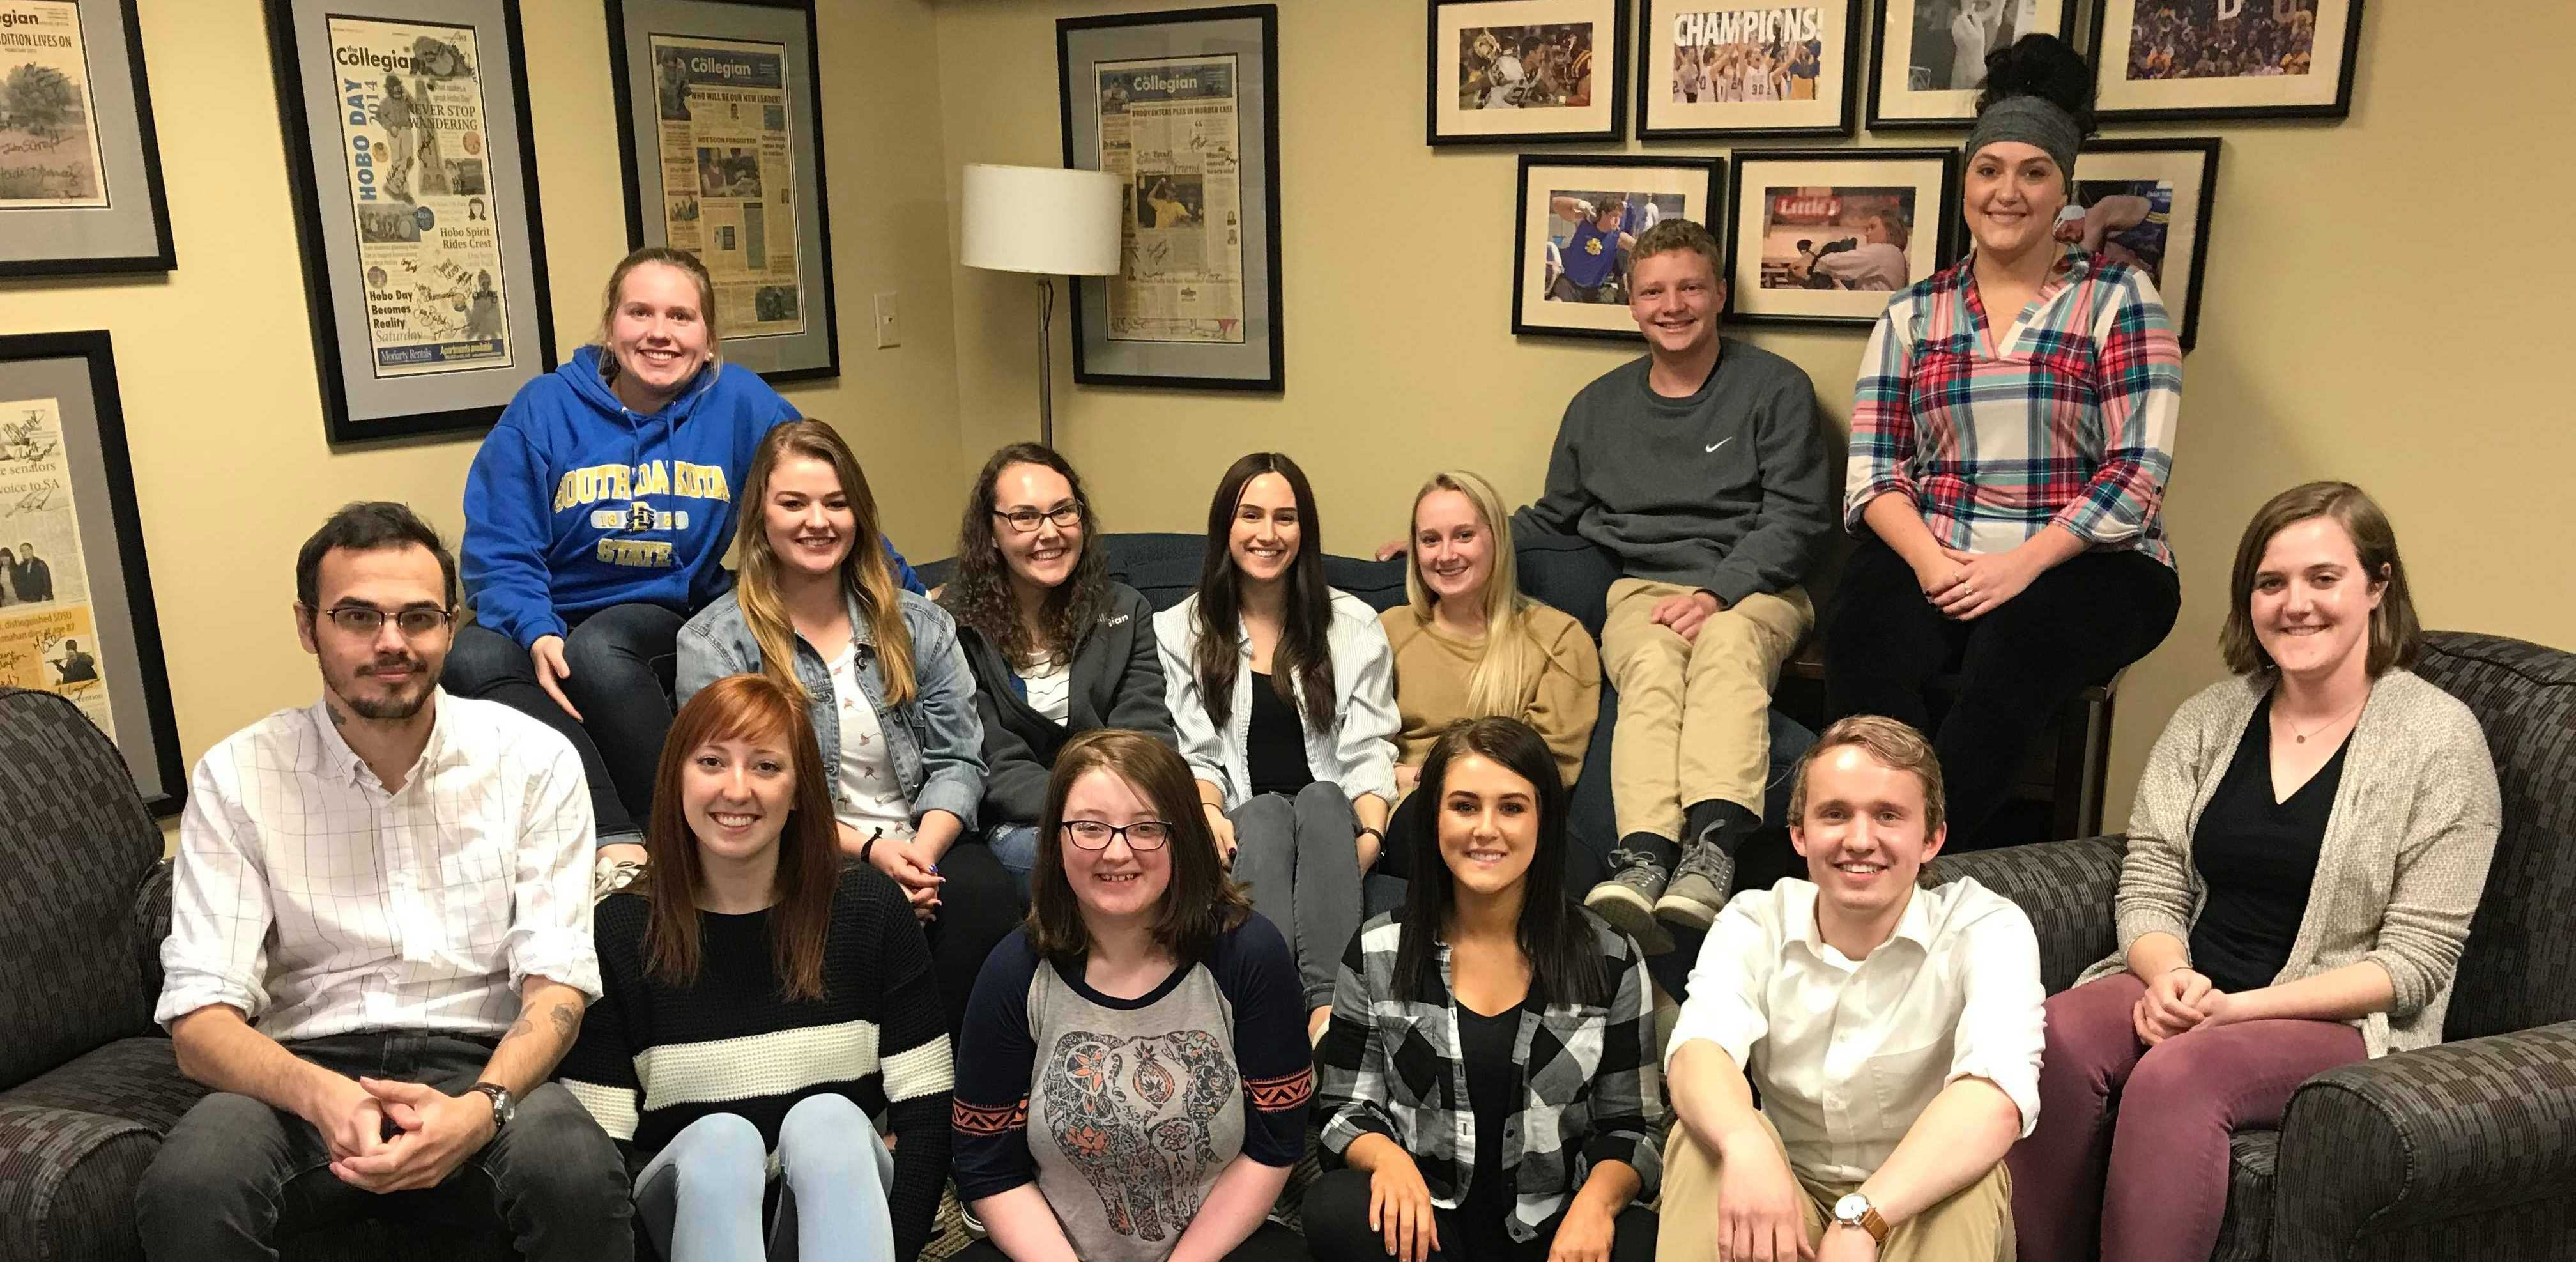 MAKENZIE HUBER The spring 2018 Collegian editorial staff shows its support for the national movement #SaveStudentNewsrooms. On April 25, more than 100 newsrooms across the country are shedding light on issues student media faces on college campuses.